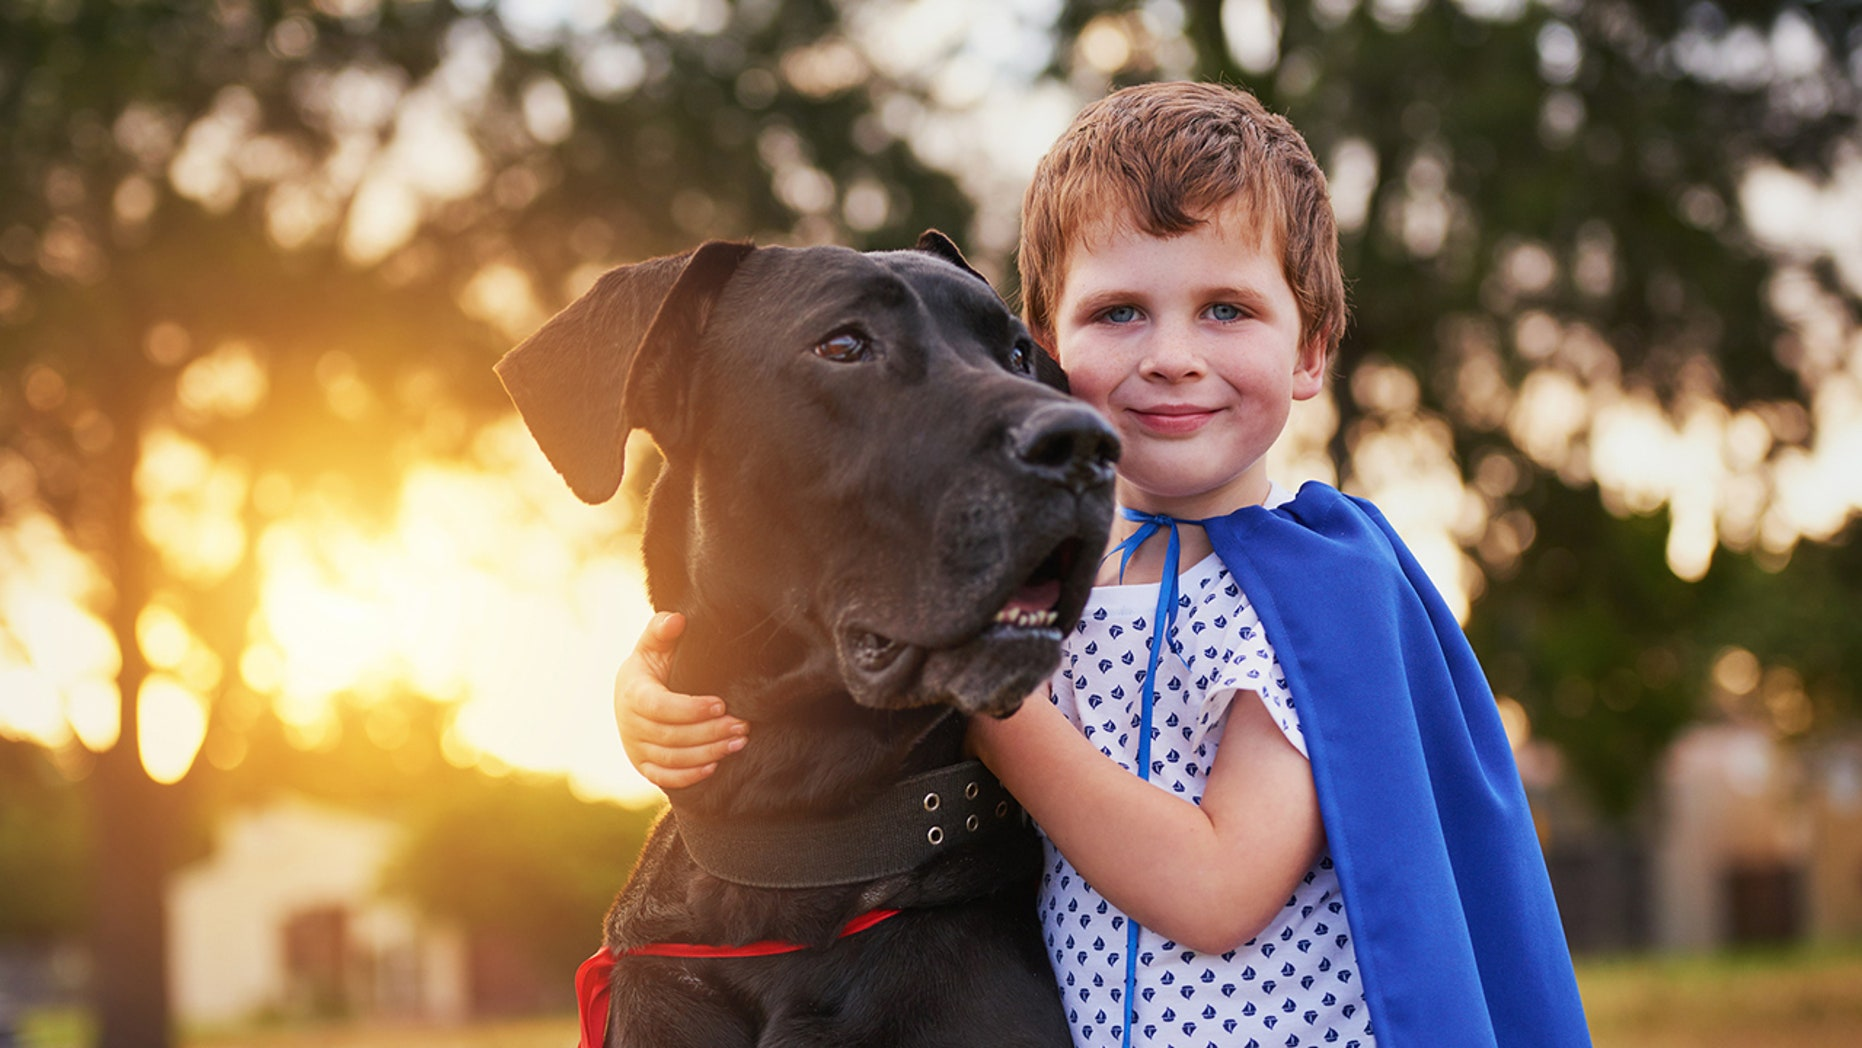 Kids growing up in households with dogs or cats may not be benefiting as much as we think.